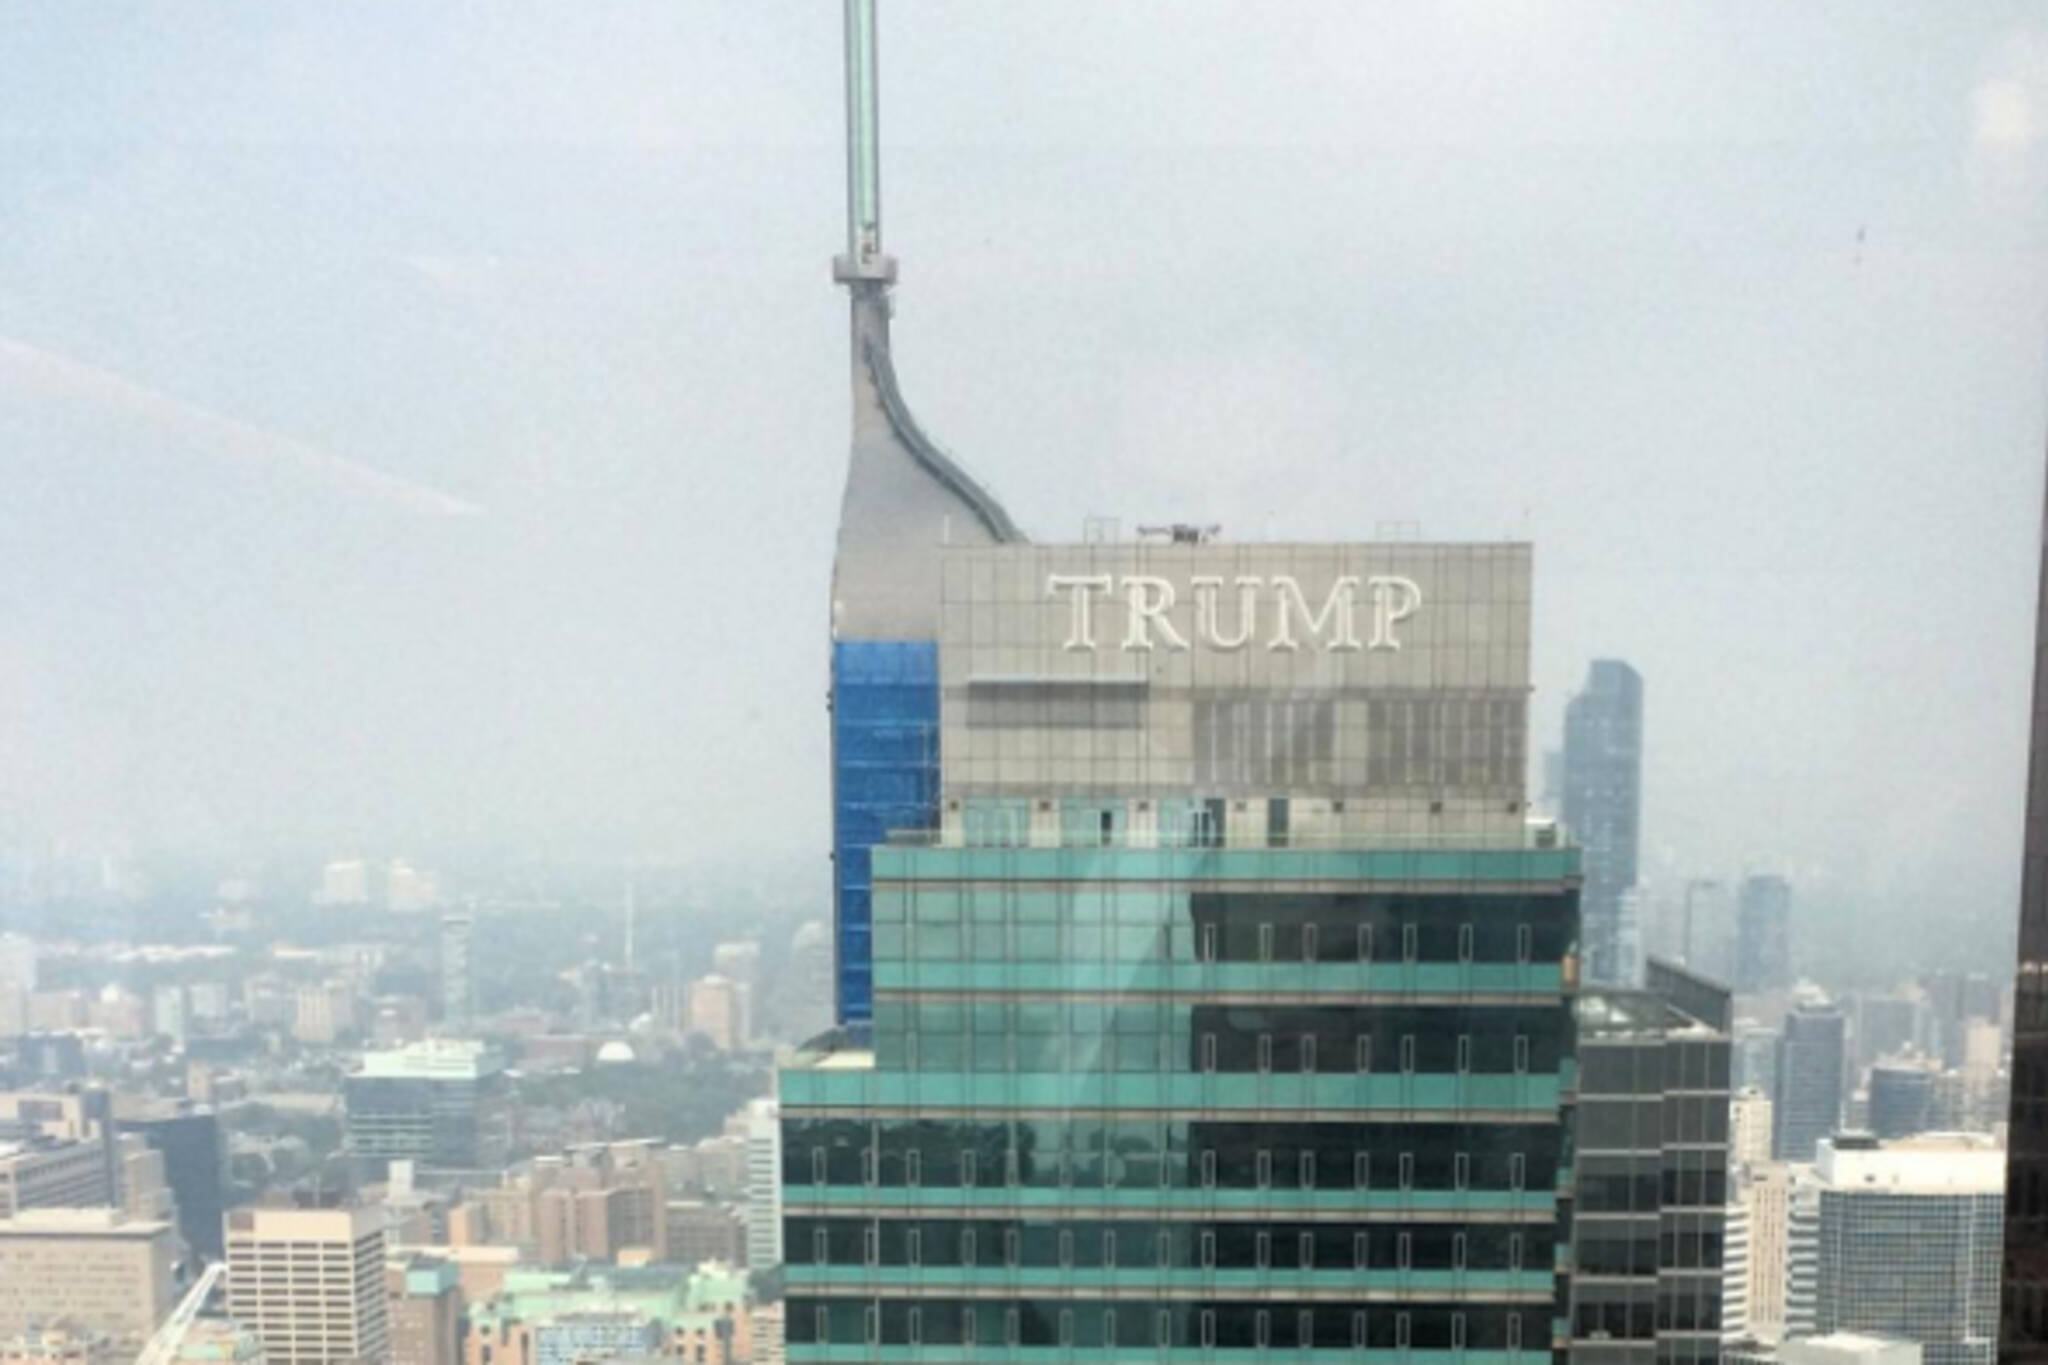 Trump Hotel And Tower Toronto